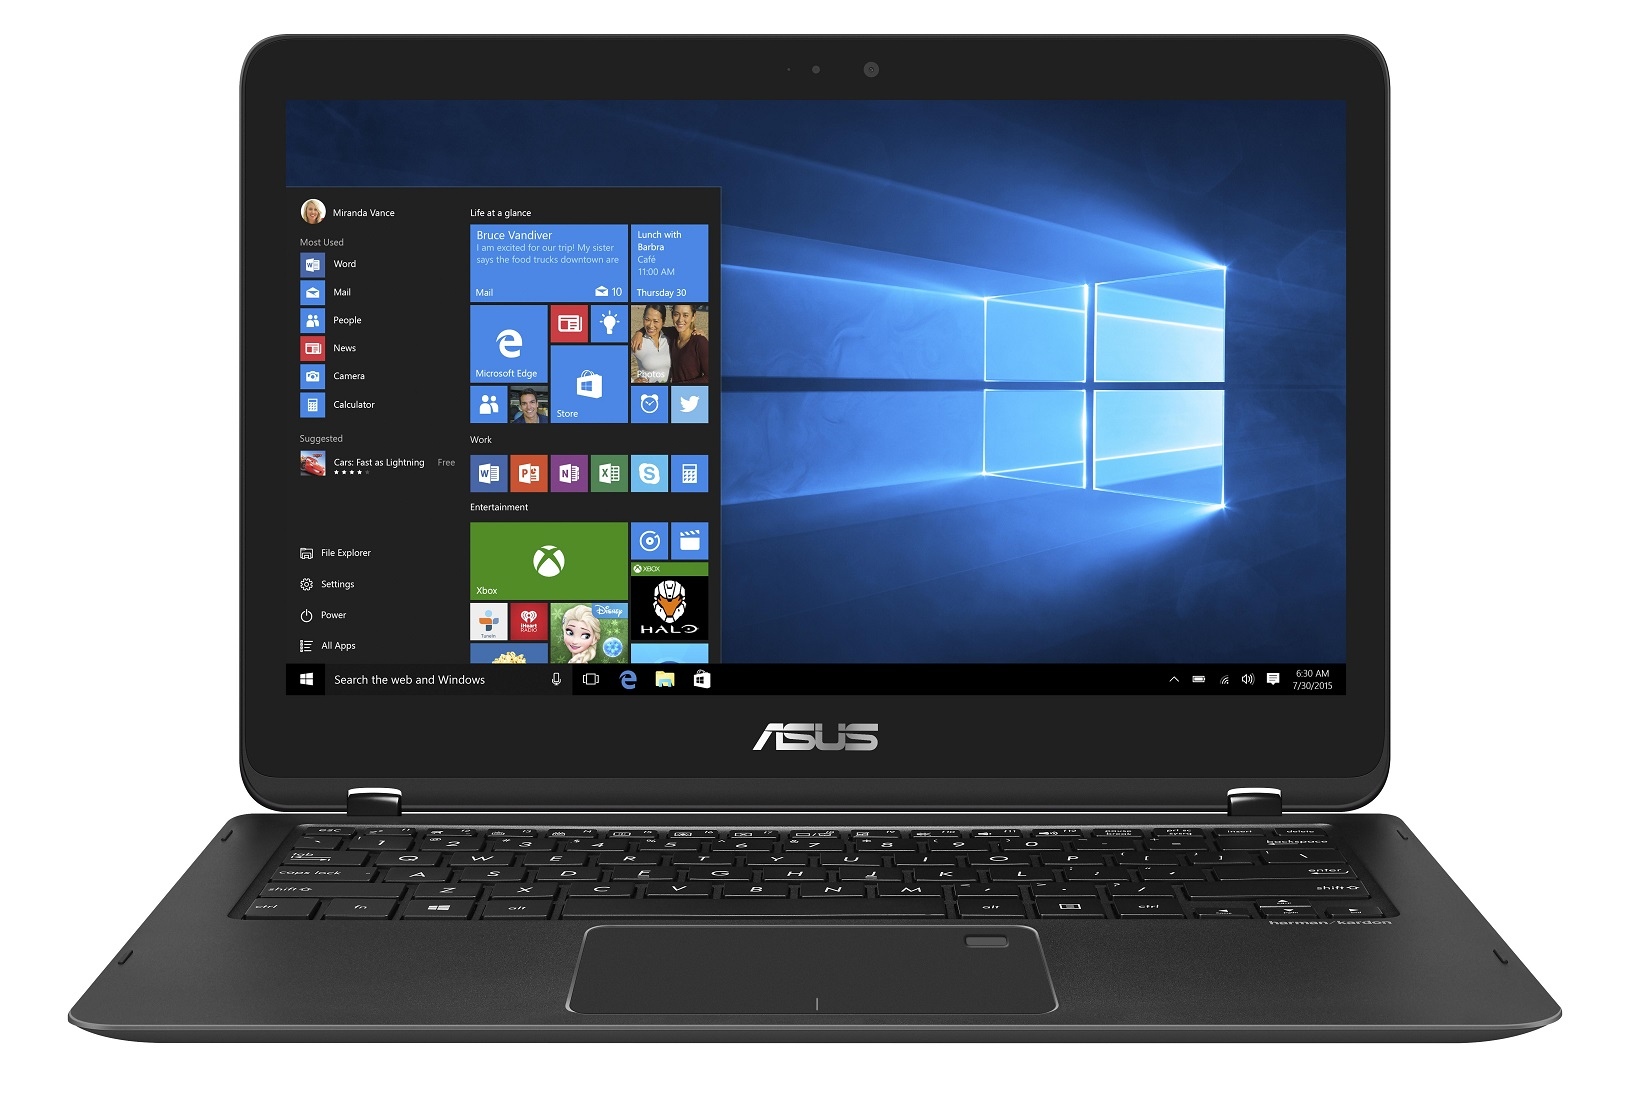 "ASUS UX360UAK-BB358R i7-7500U/16GB/512G SSD PCIe/HD graphics/13,3"" 1920x1080 IPS Touch matný/W10 Pro/Black"